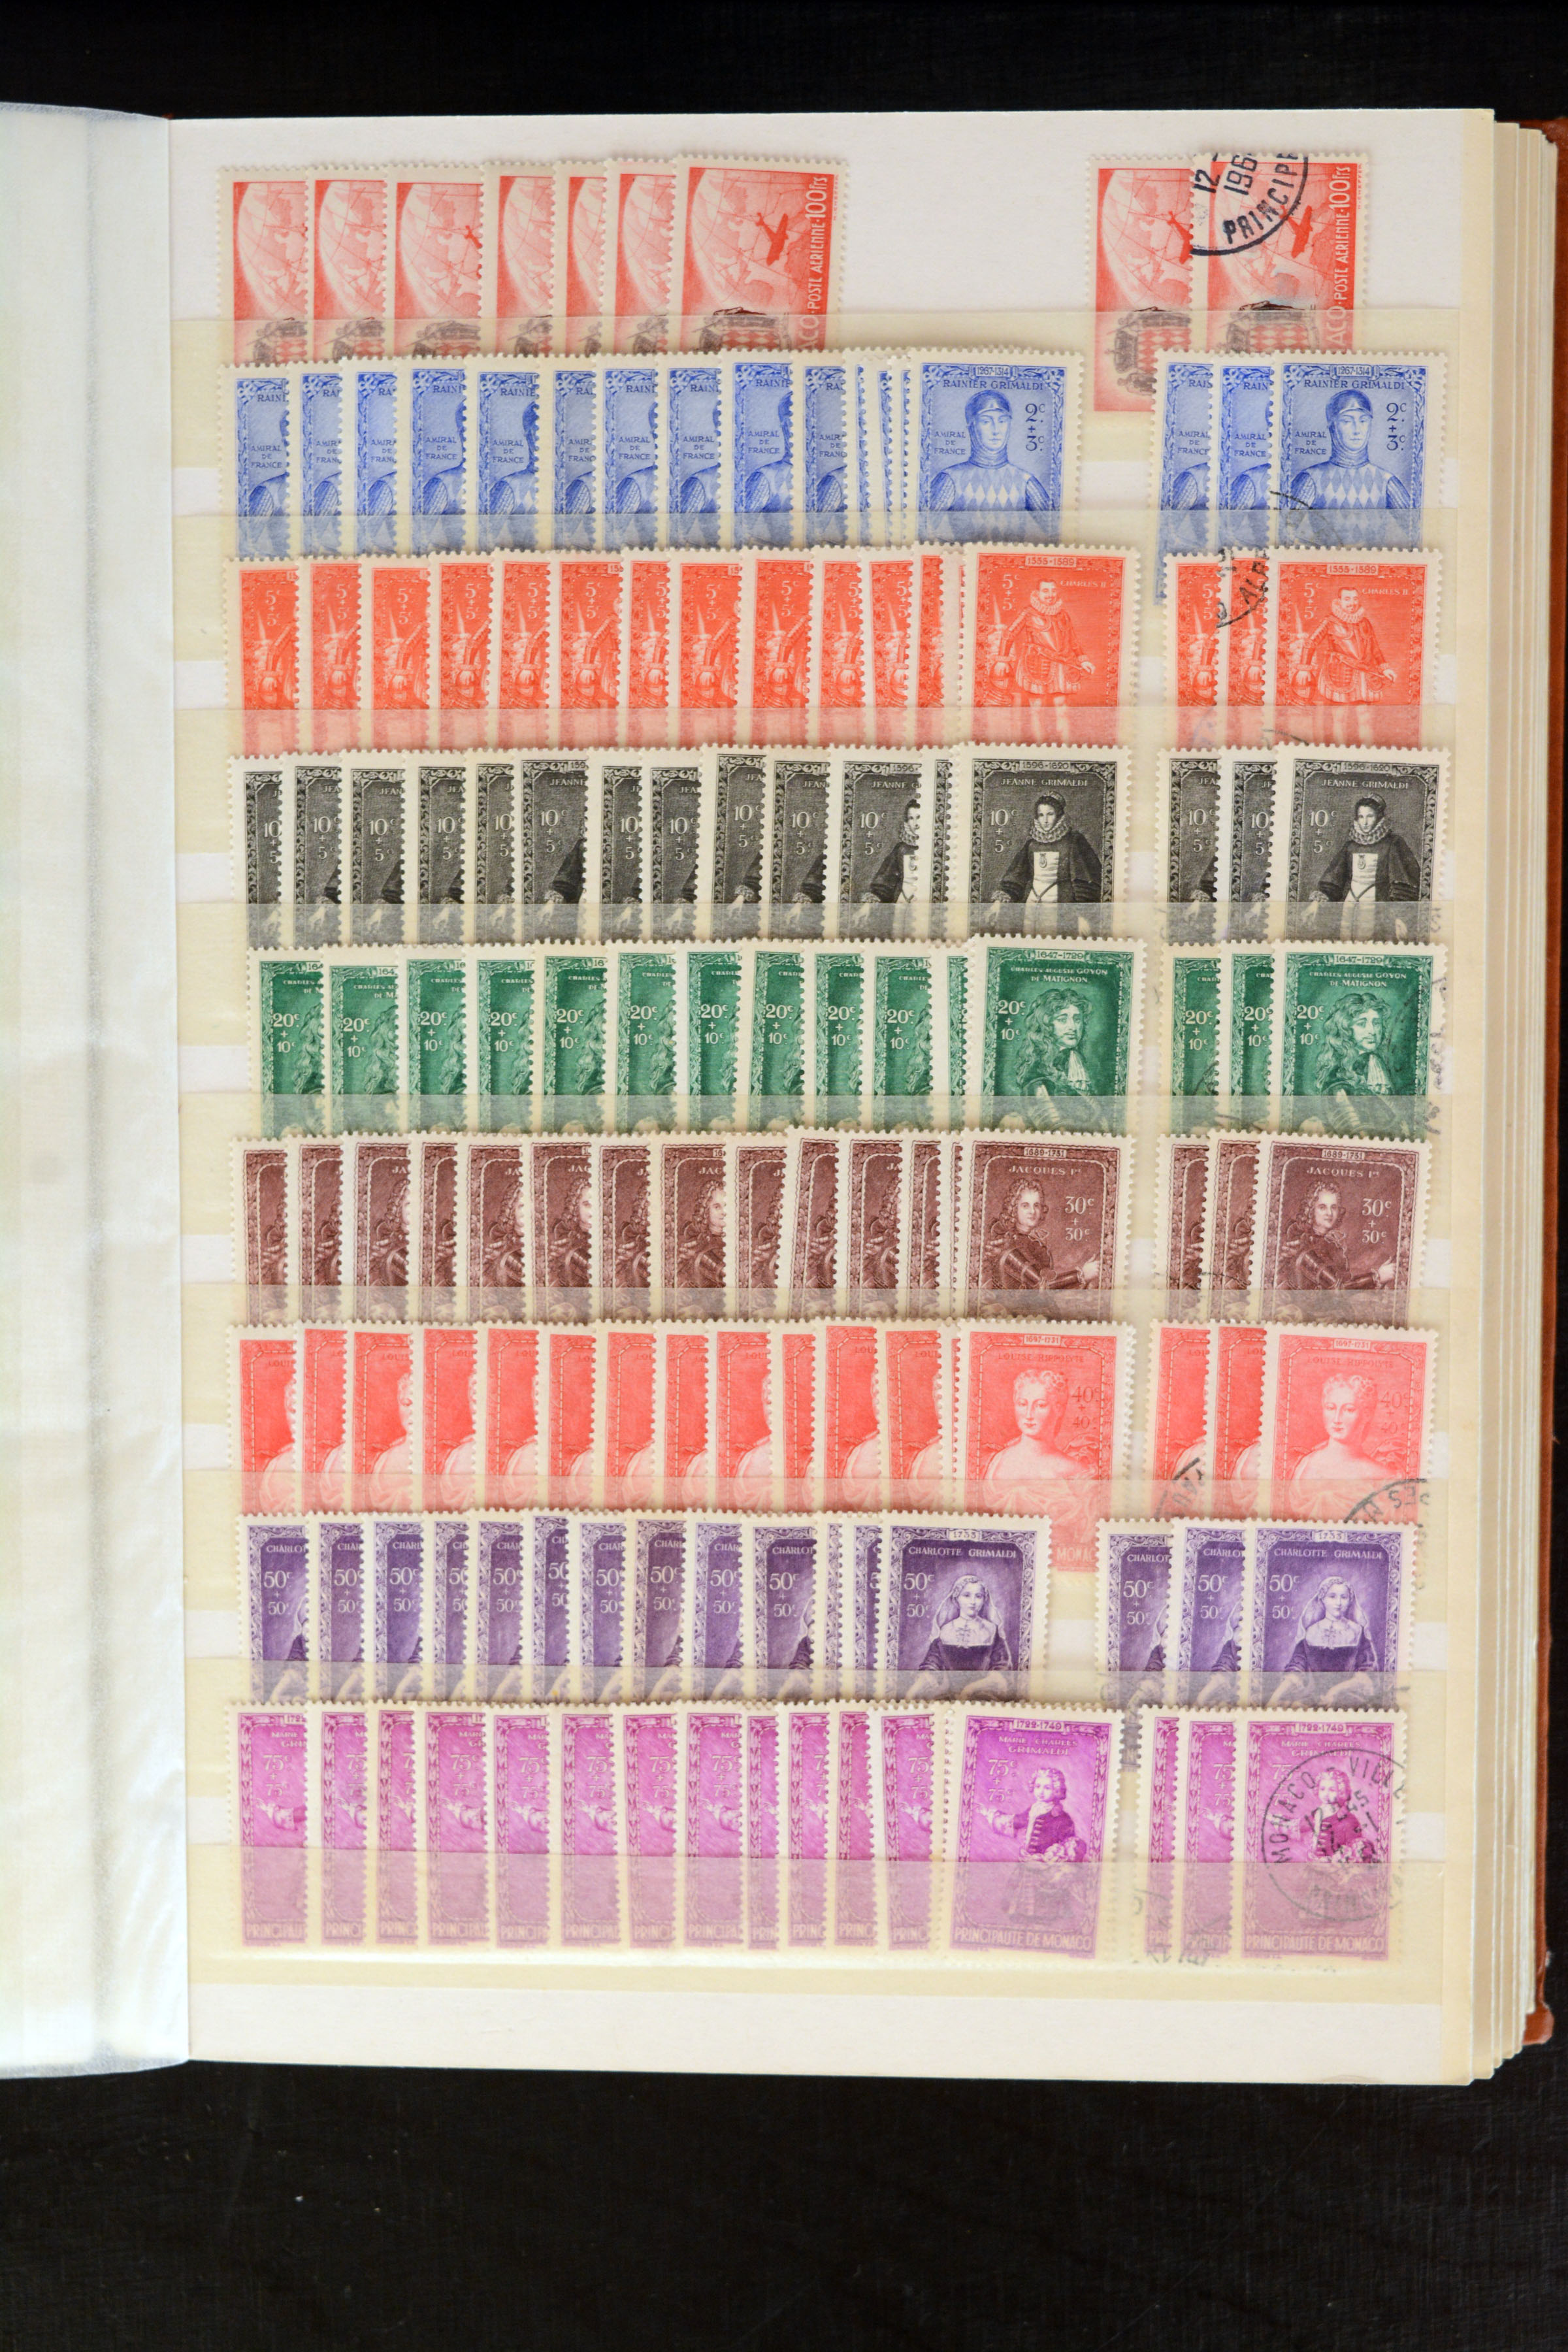 Lot 4274 - europe Monaco -  Heinrich Koehler Auktionen Auction #368- Day 3